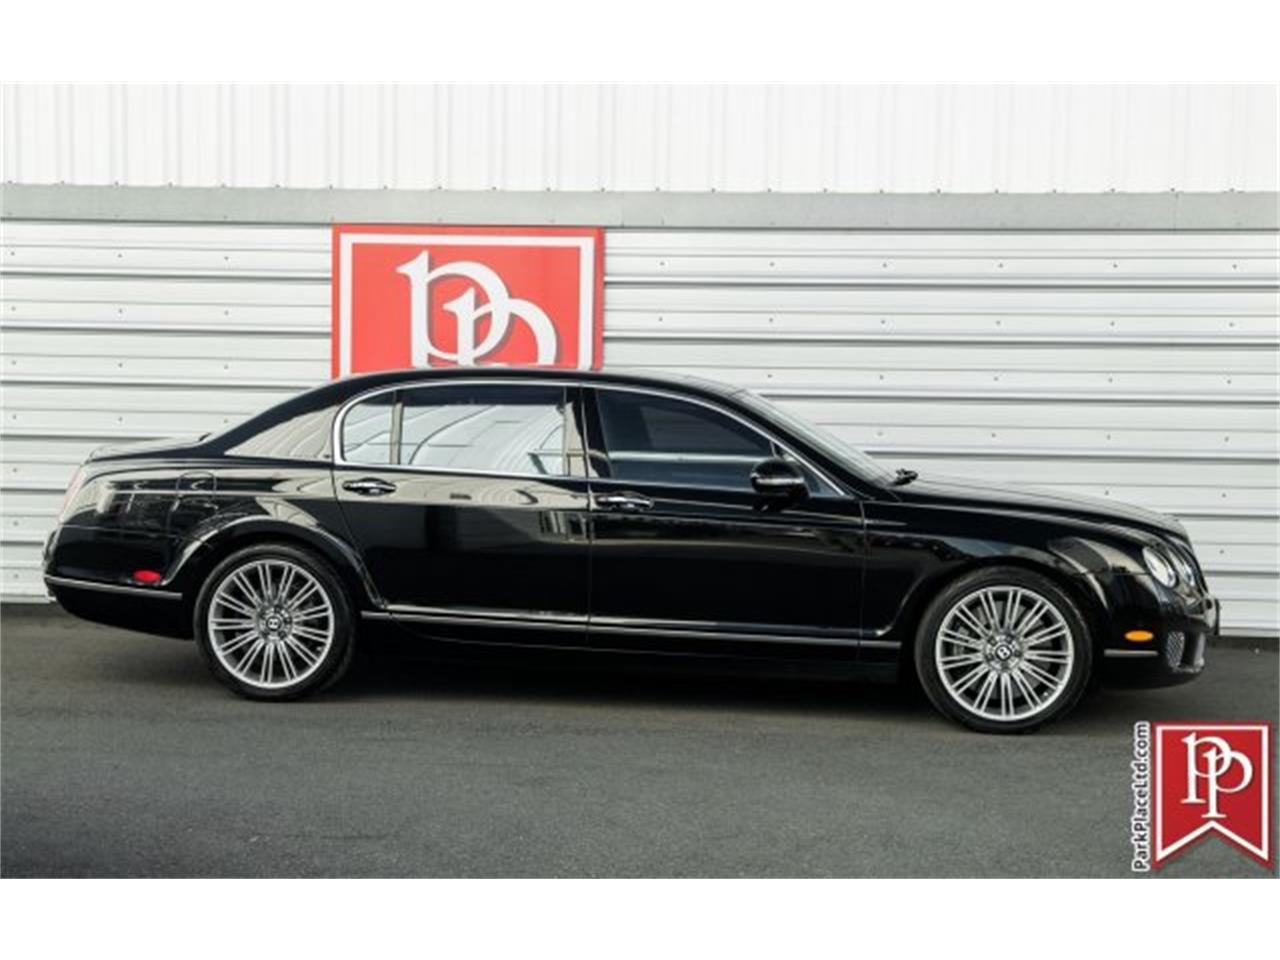 Large Picture of '10 Bentley Continental Flying Spur located in Washington - PSB8